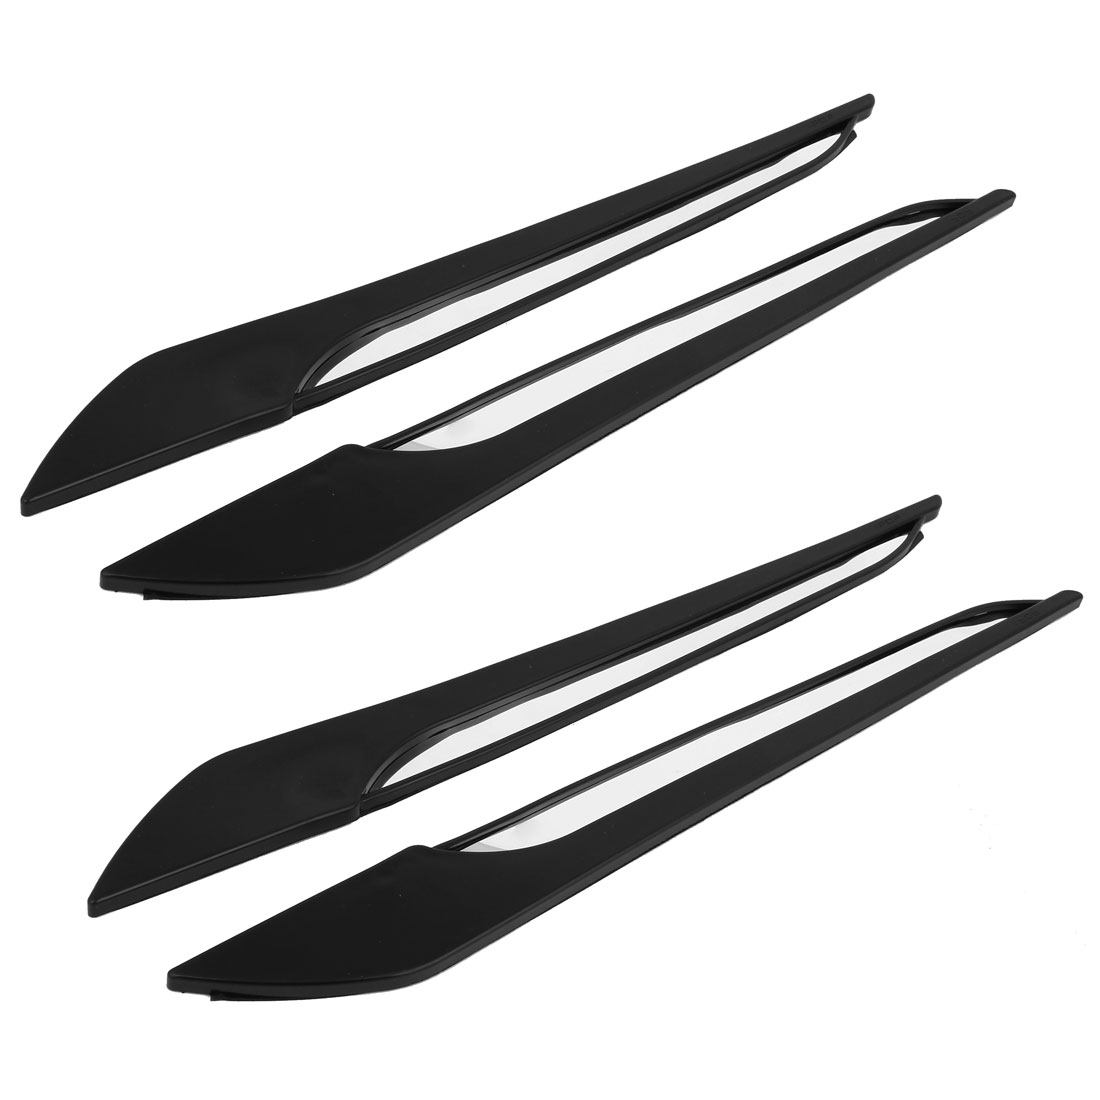 4 Pcs 44cm Long Silver Tone Black Rubber Car Front Rear Door Edge Bumper Guard Protector